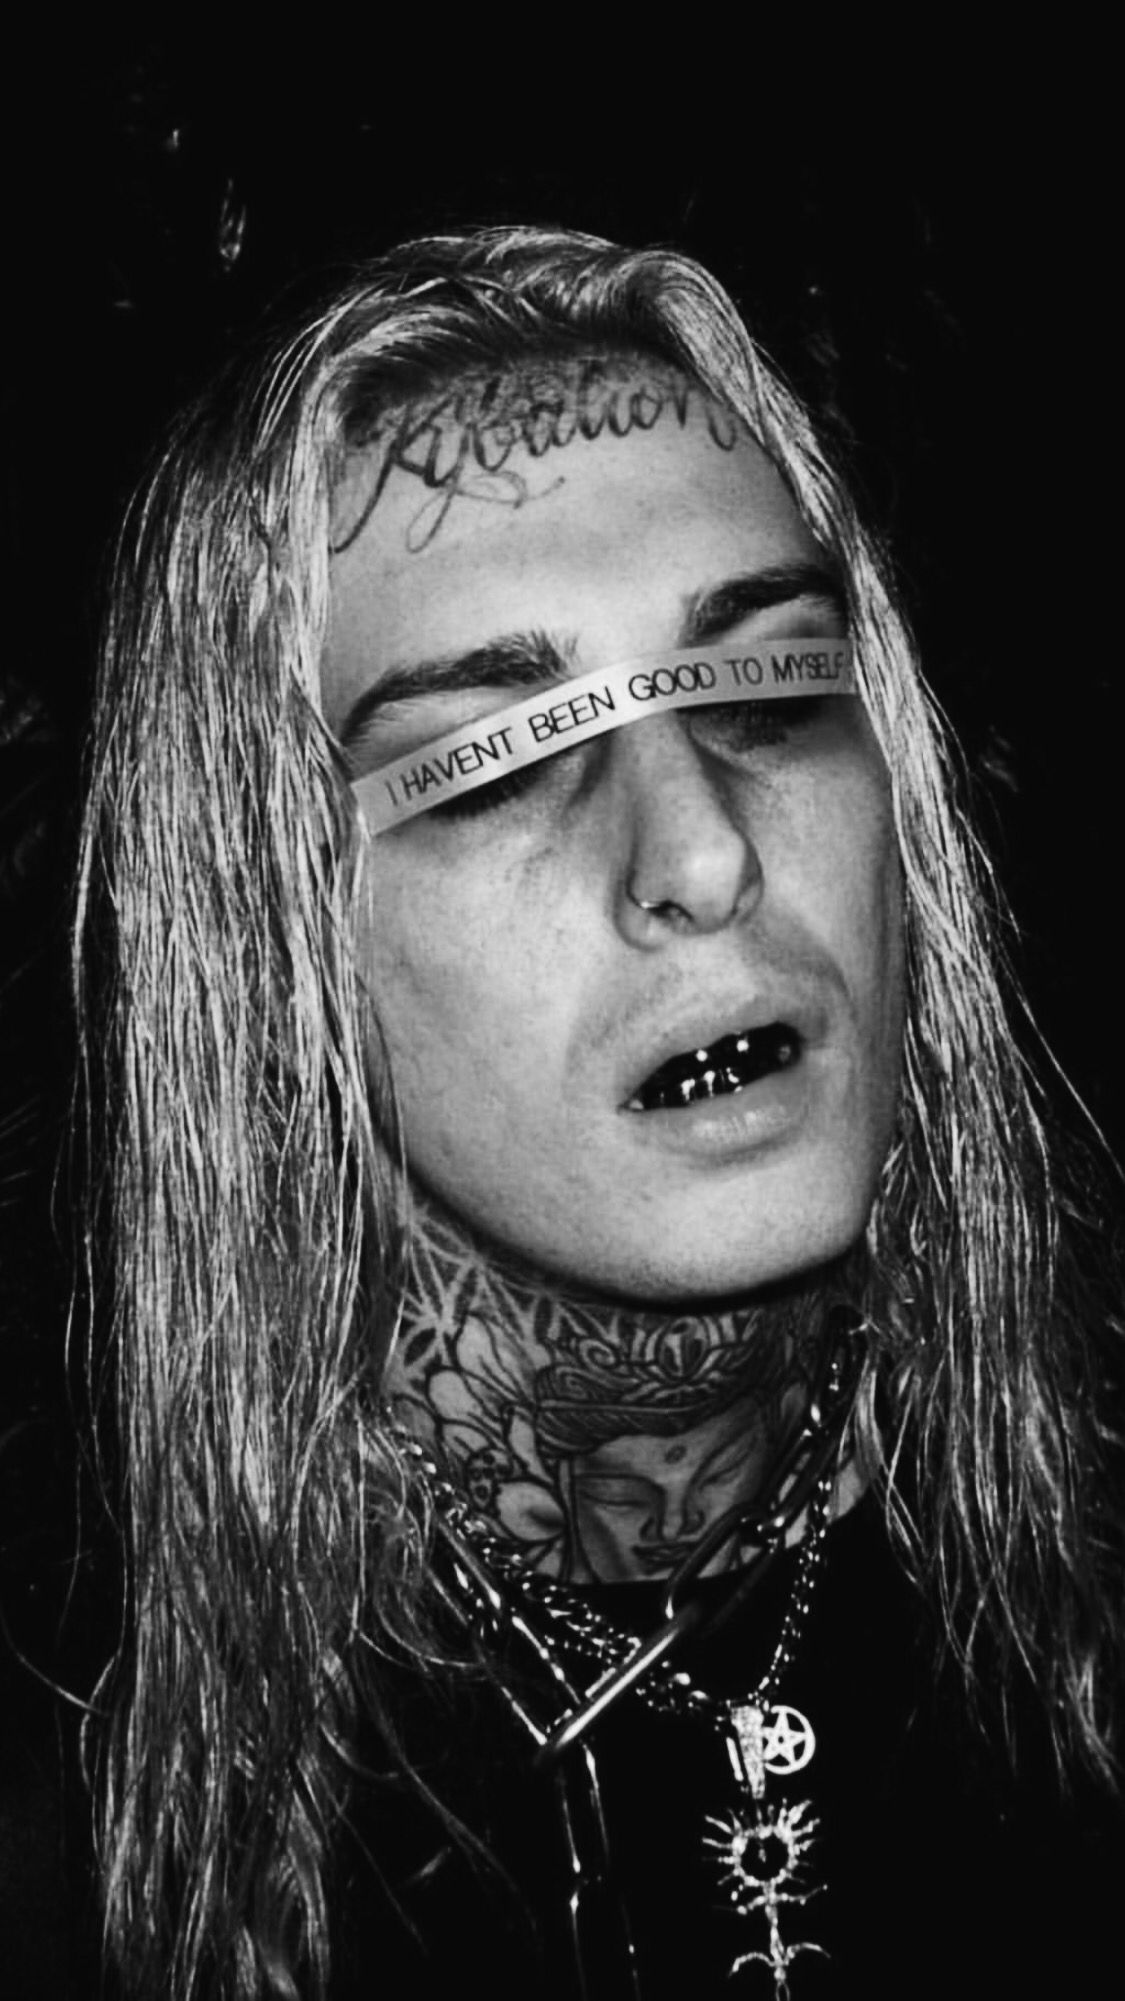 Pin by worm on ghostemane. (With images) Aesthetic